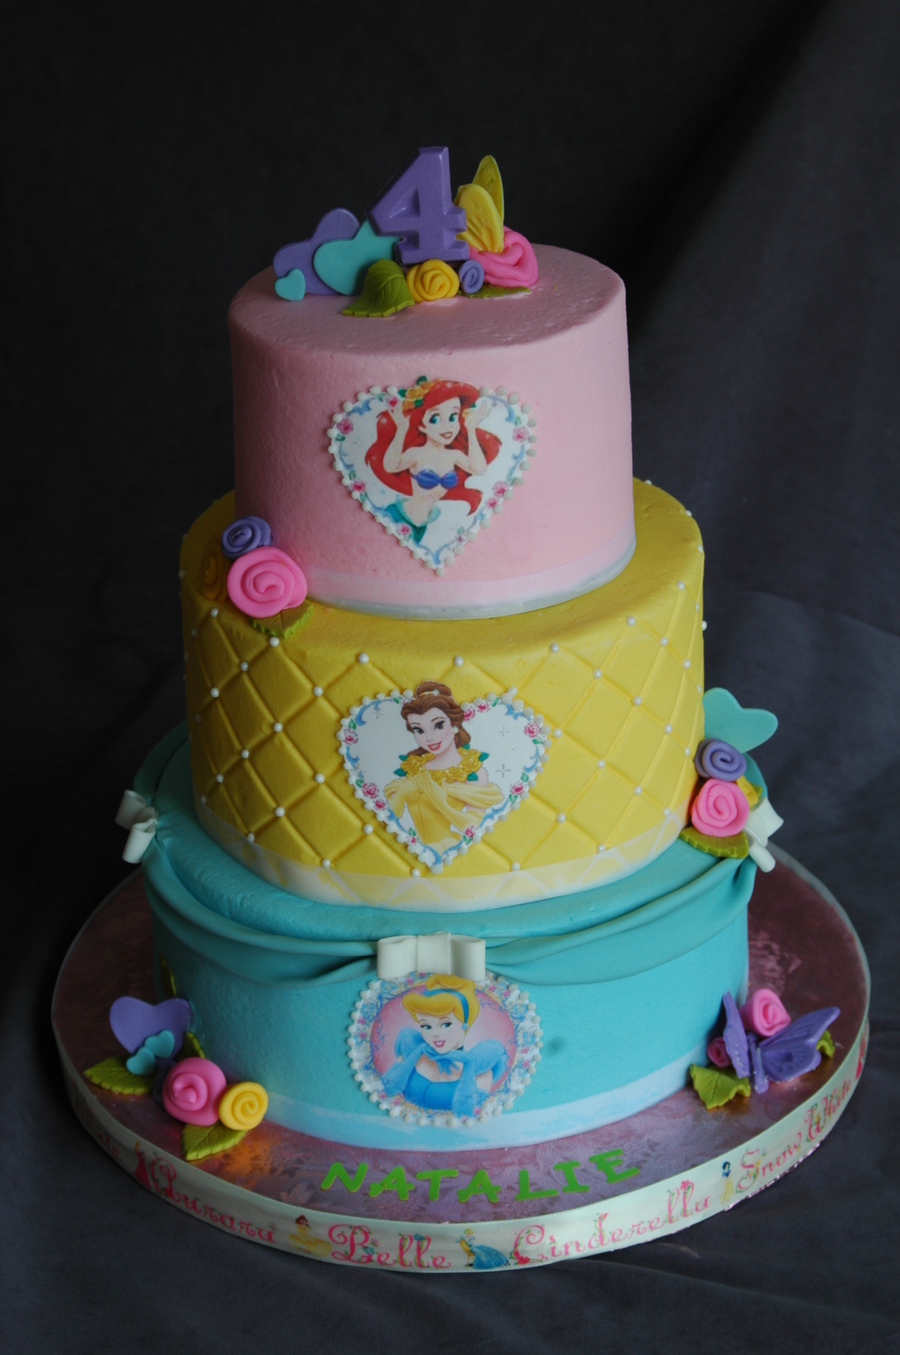 Disney Cake Designs Princesses : Disney Princess Birthday - CakeCentral.com